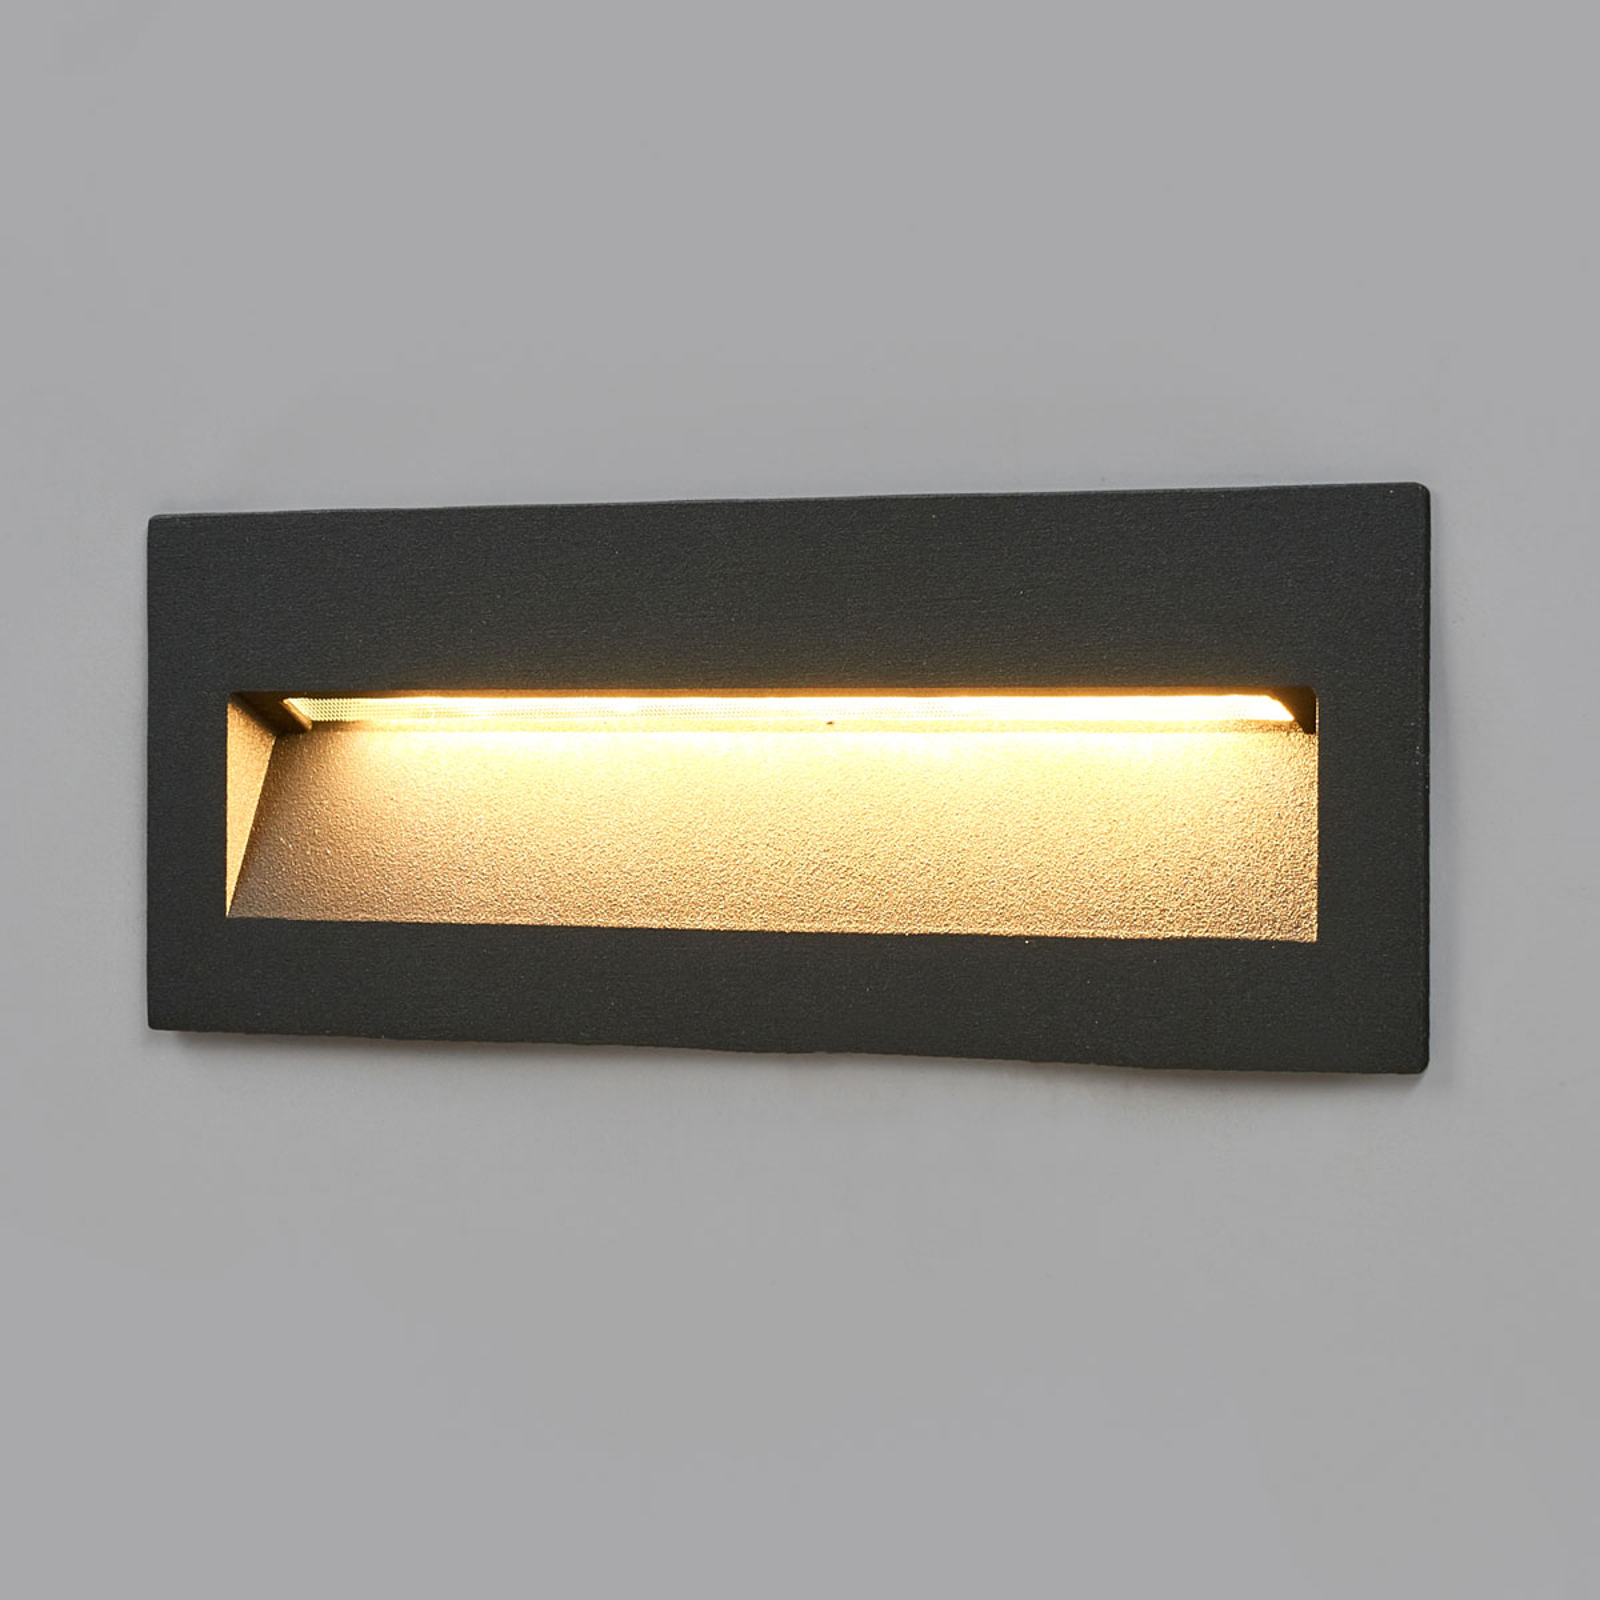 Aplique empotrable LED Loya oscuro, pared exterior